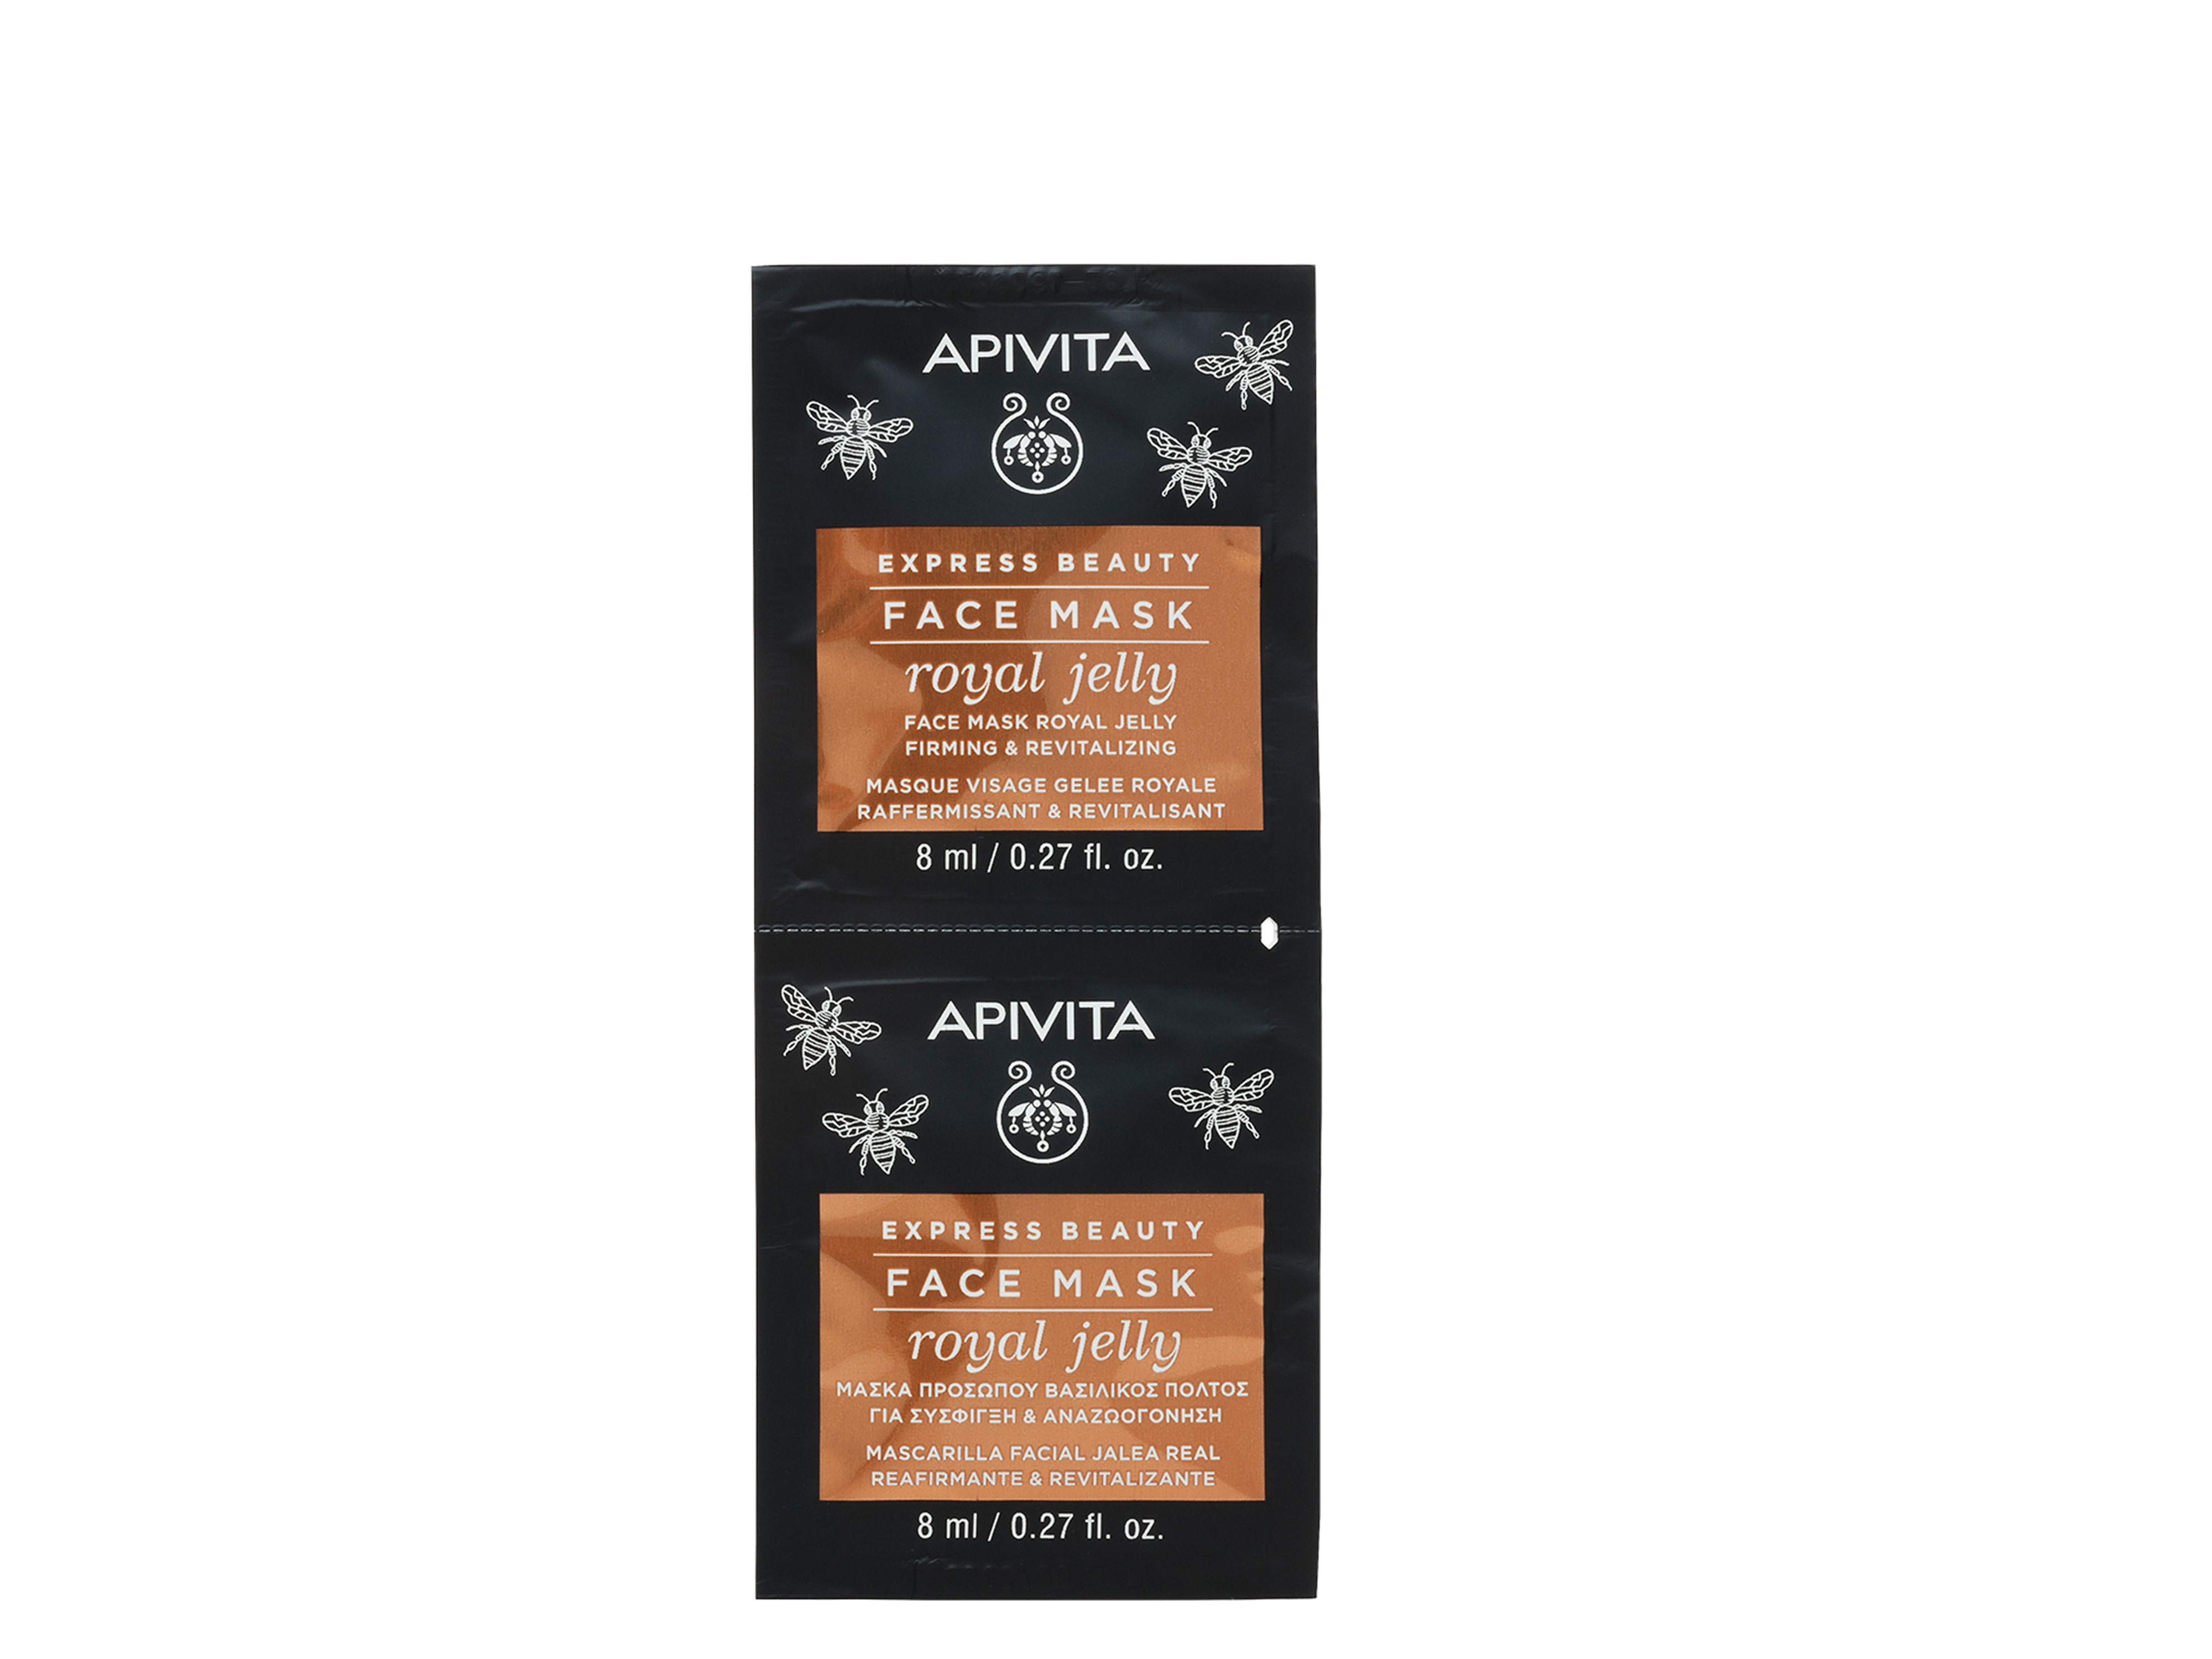 Apivita Express Beauty Face Mask Royal Jelly, 2 x 8 ml